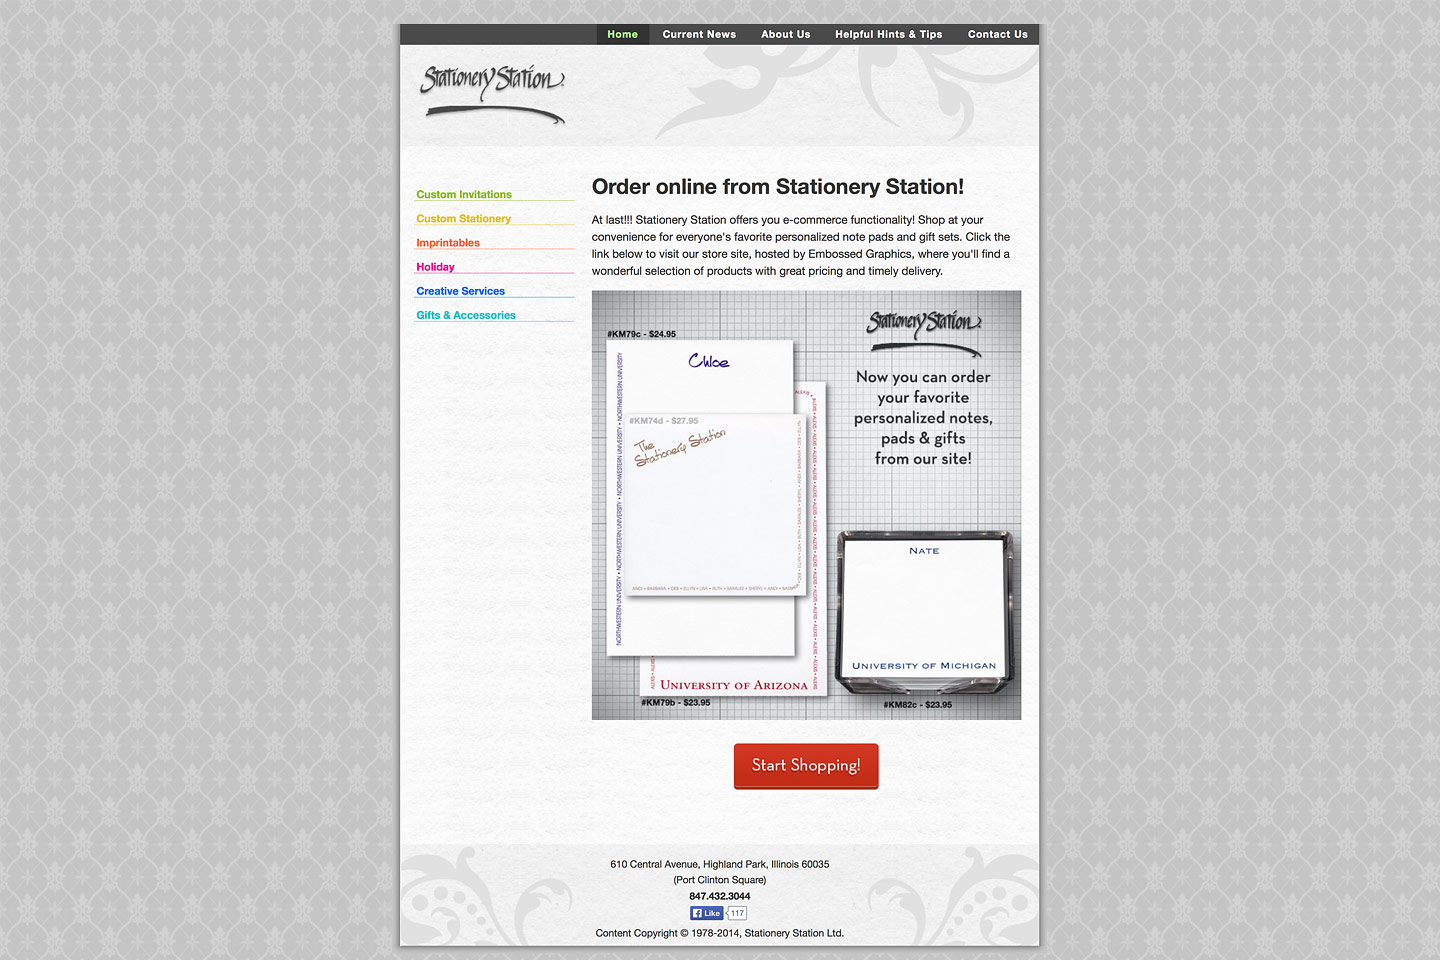 a screen capture of the stationery station homepage, designed and developed by 4d, inc, featuring the ability to order custom pads and notes